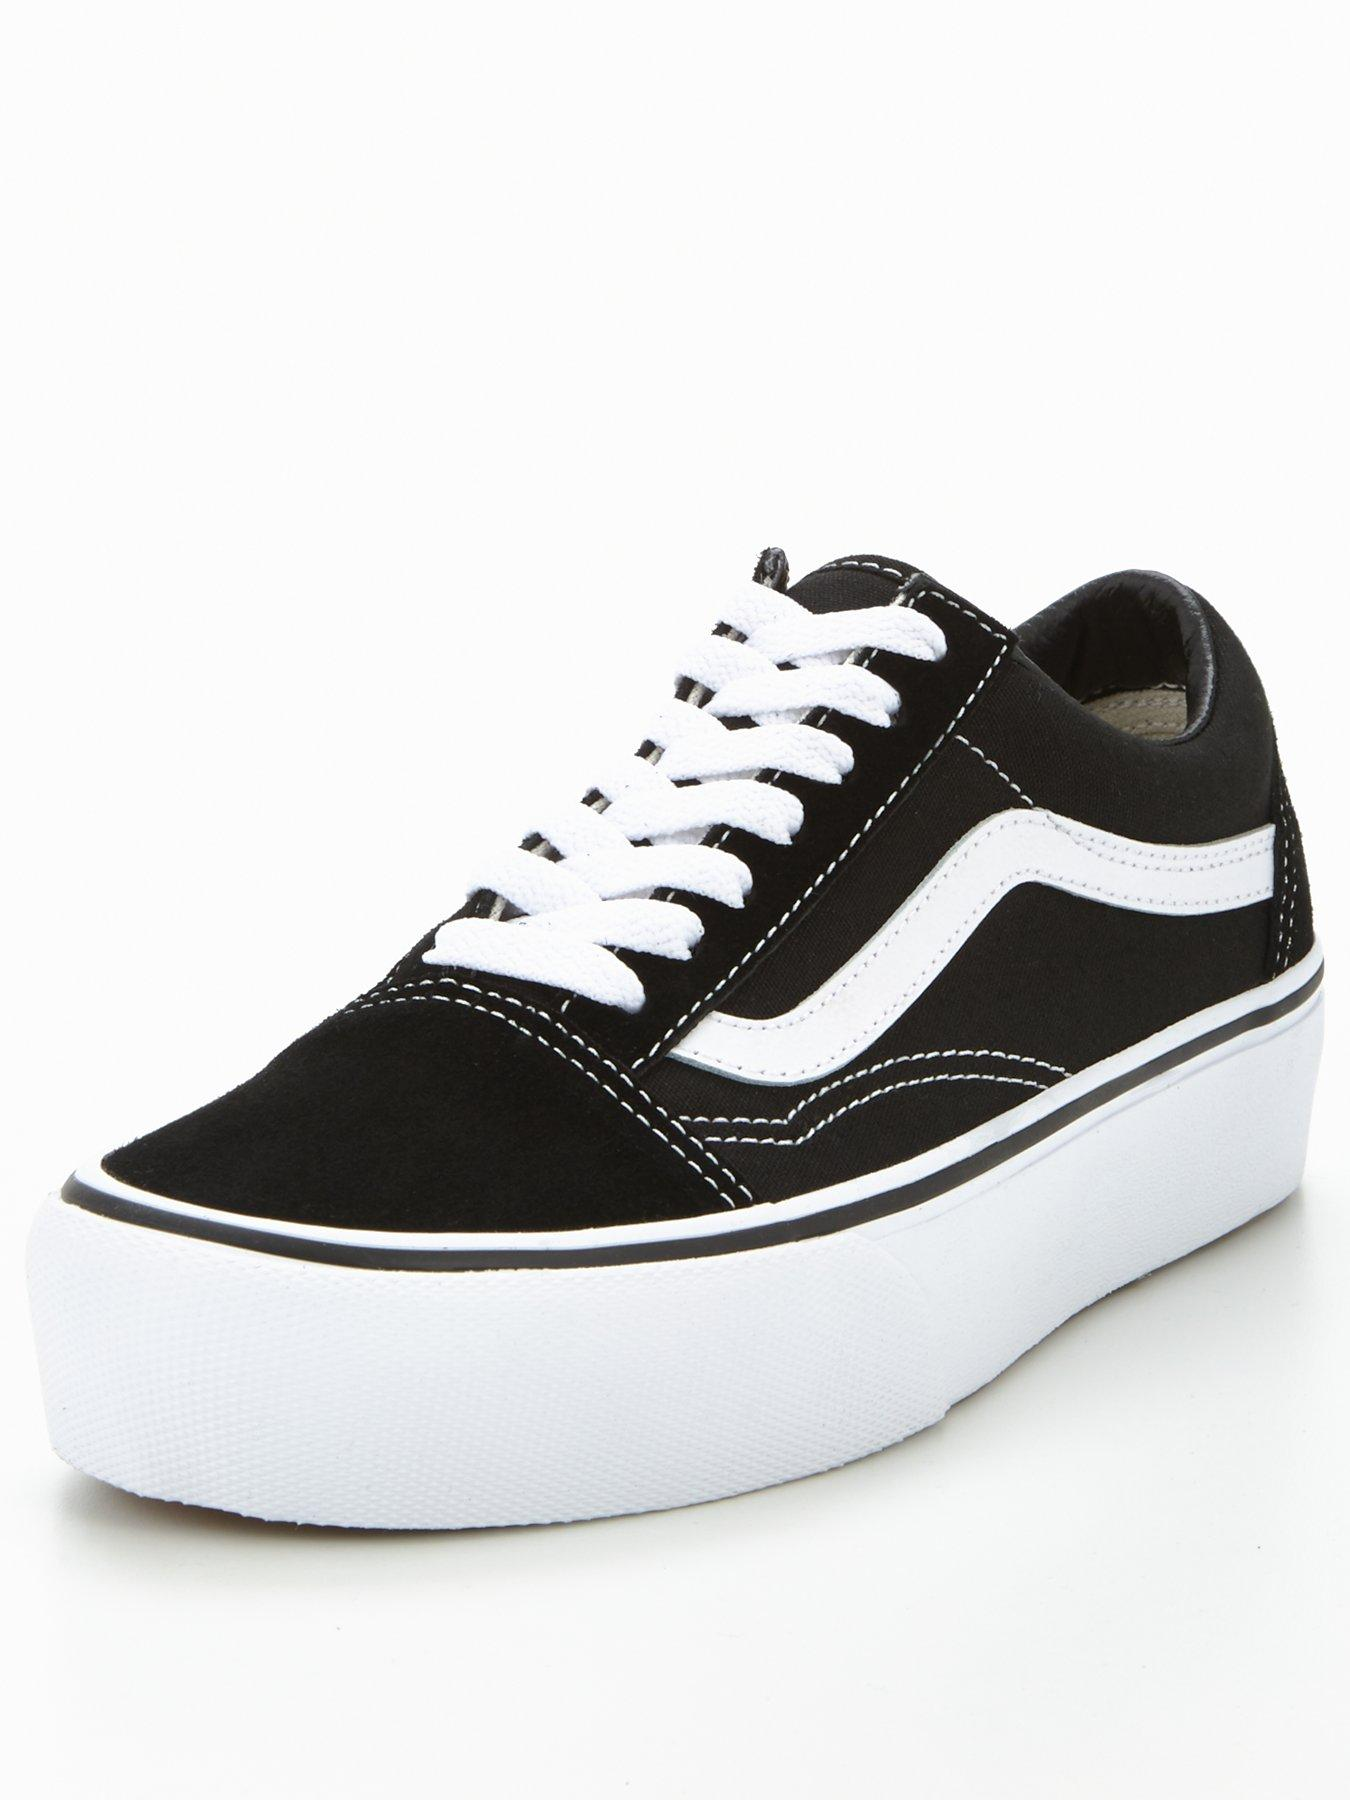 vans old skool shoes cheap